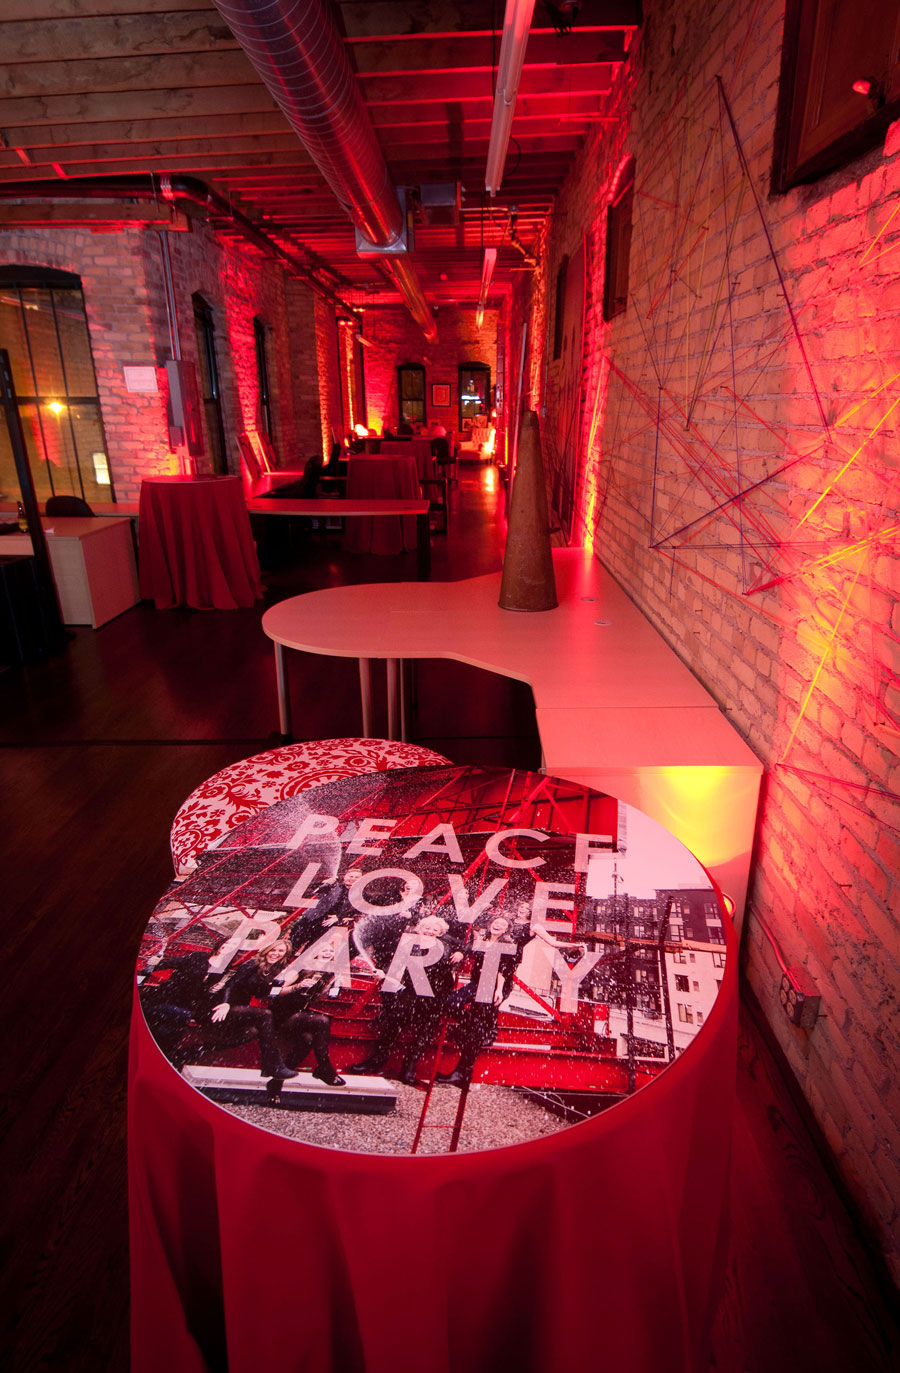 lola_red_peace_love_party_interior2.jpg